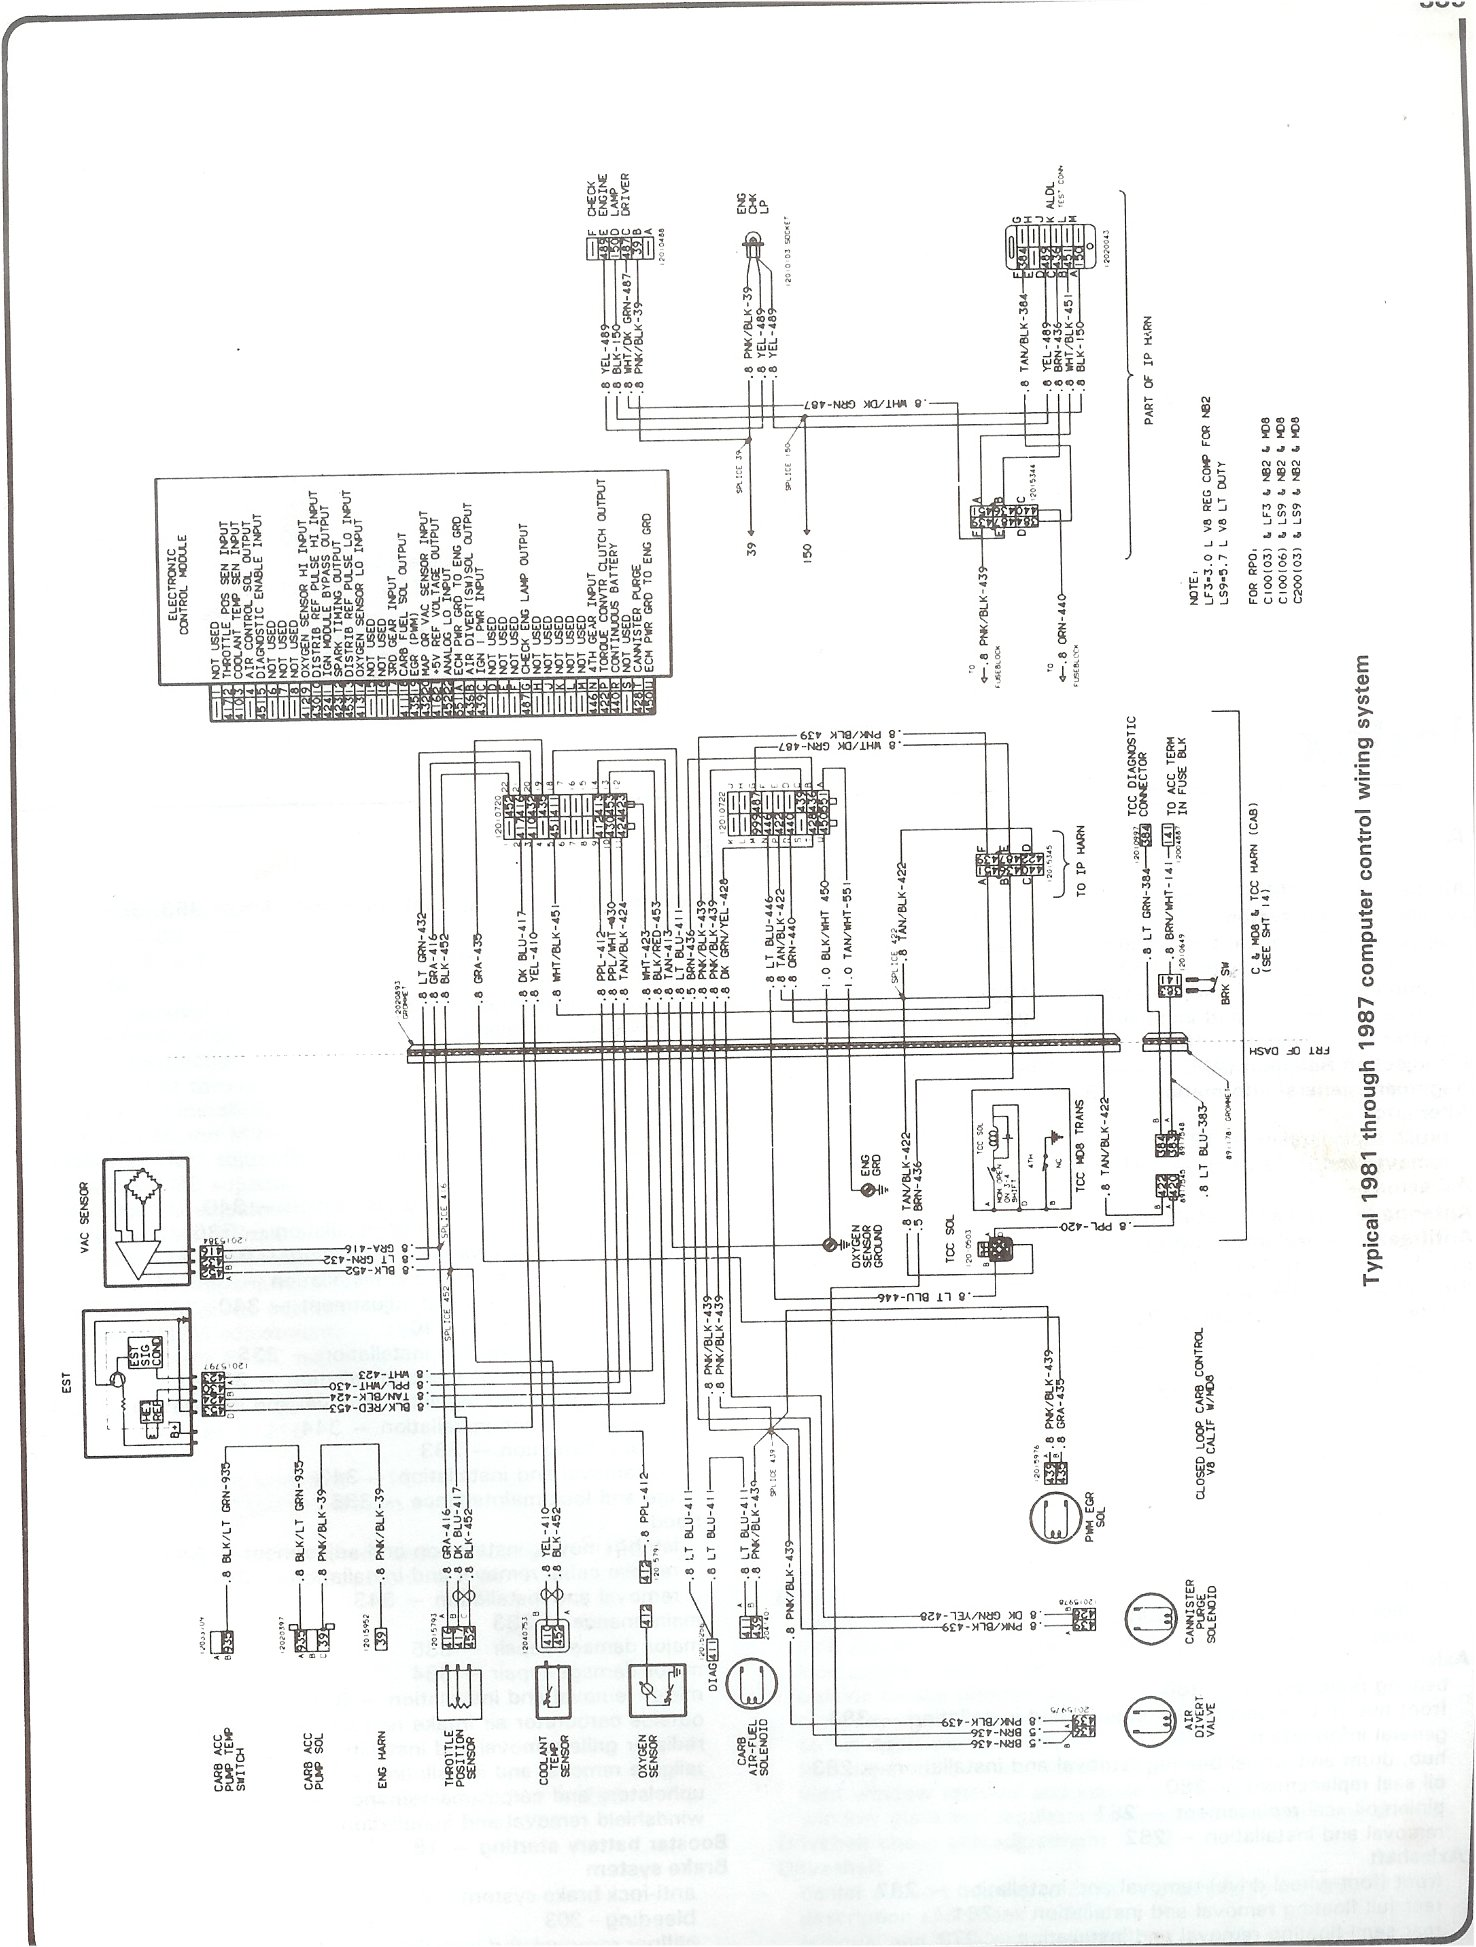 1981 Gmc Jimmy Wiring Diagram Modern Design Of Stereo For 2000 Sonoma Complete 73 87 Diagrams Rh Forum 87chevytrucks Com 1997